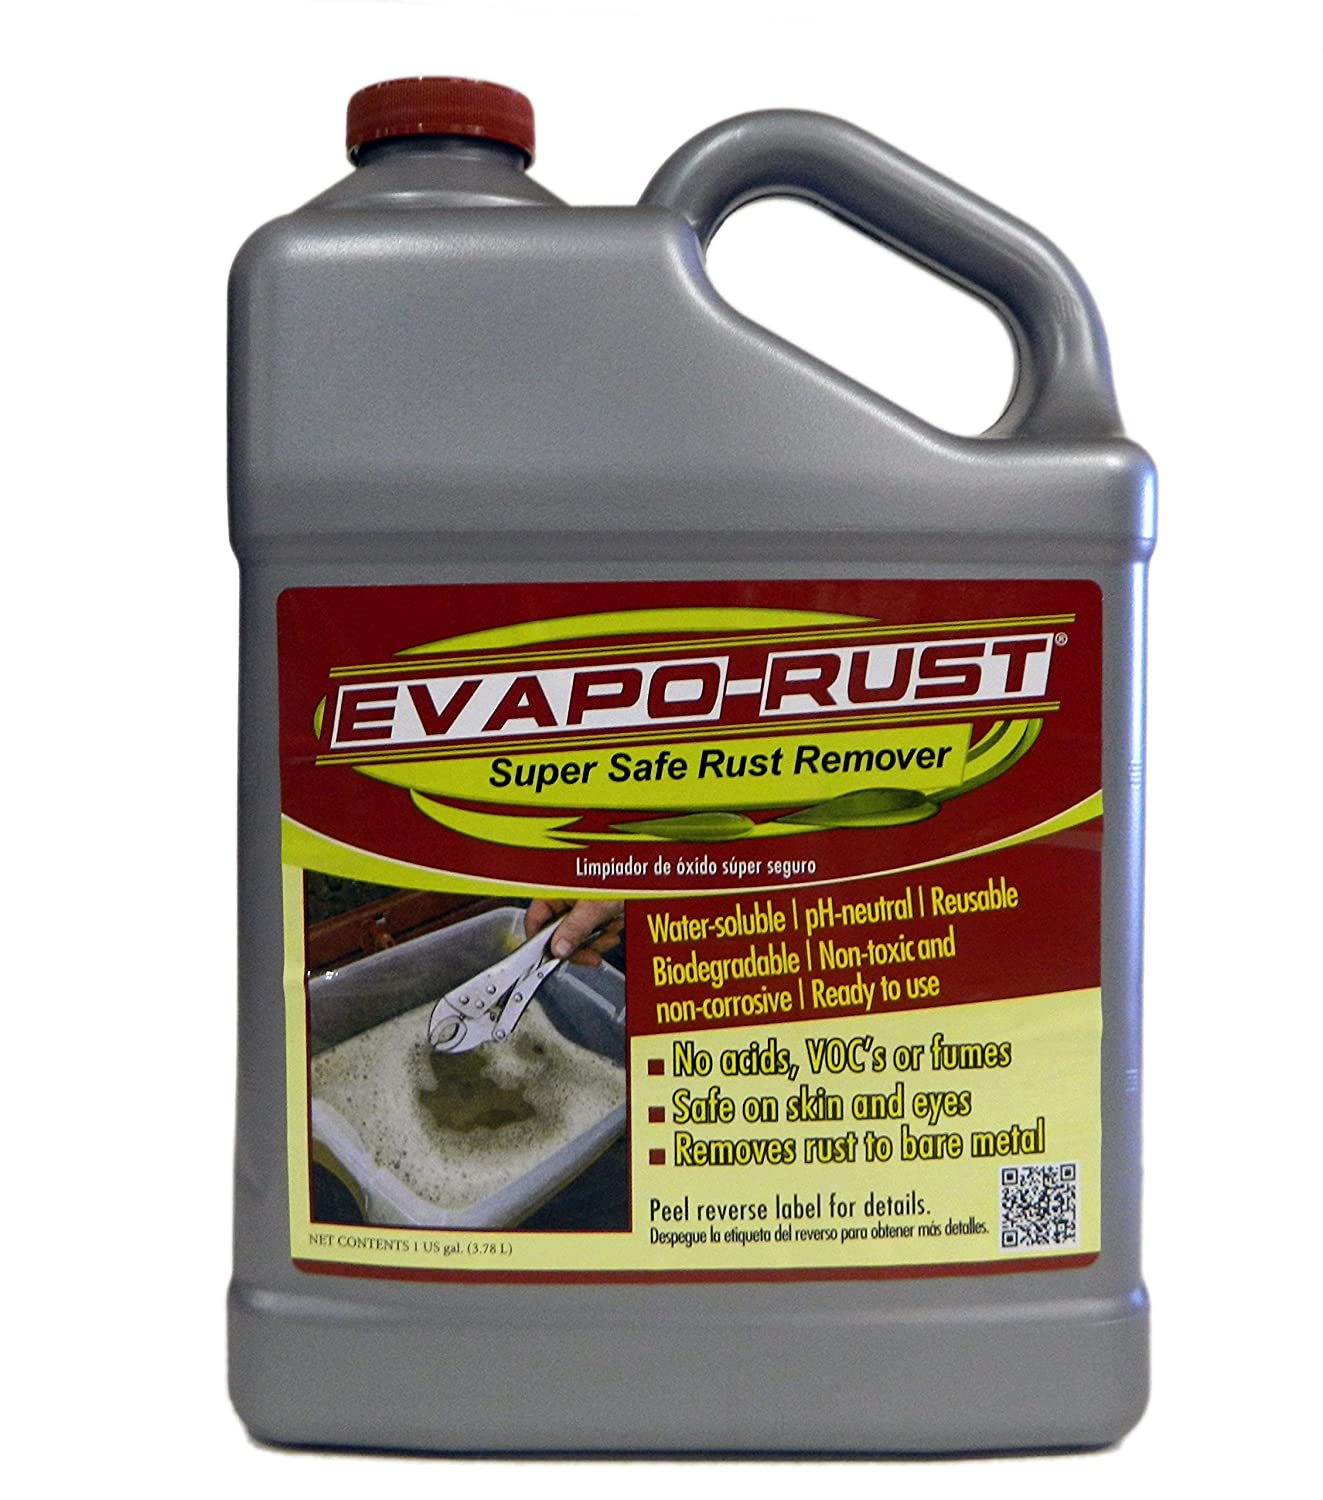 Evapo-Rust ER012 The Original Super Safe Rust Remover